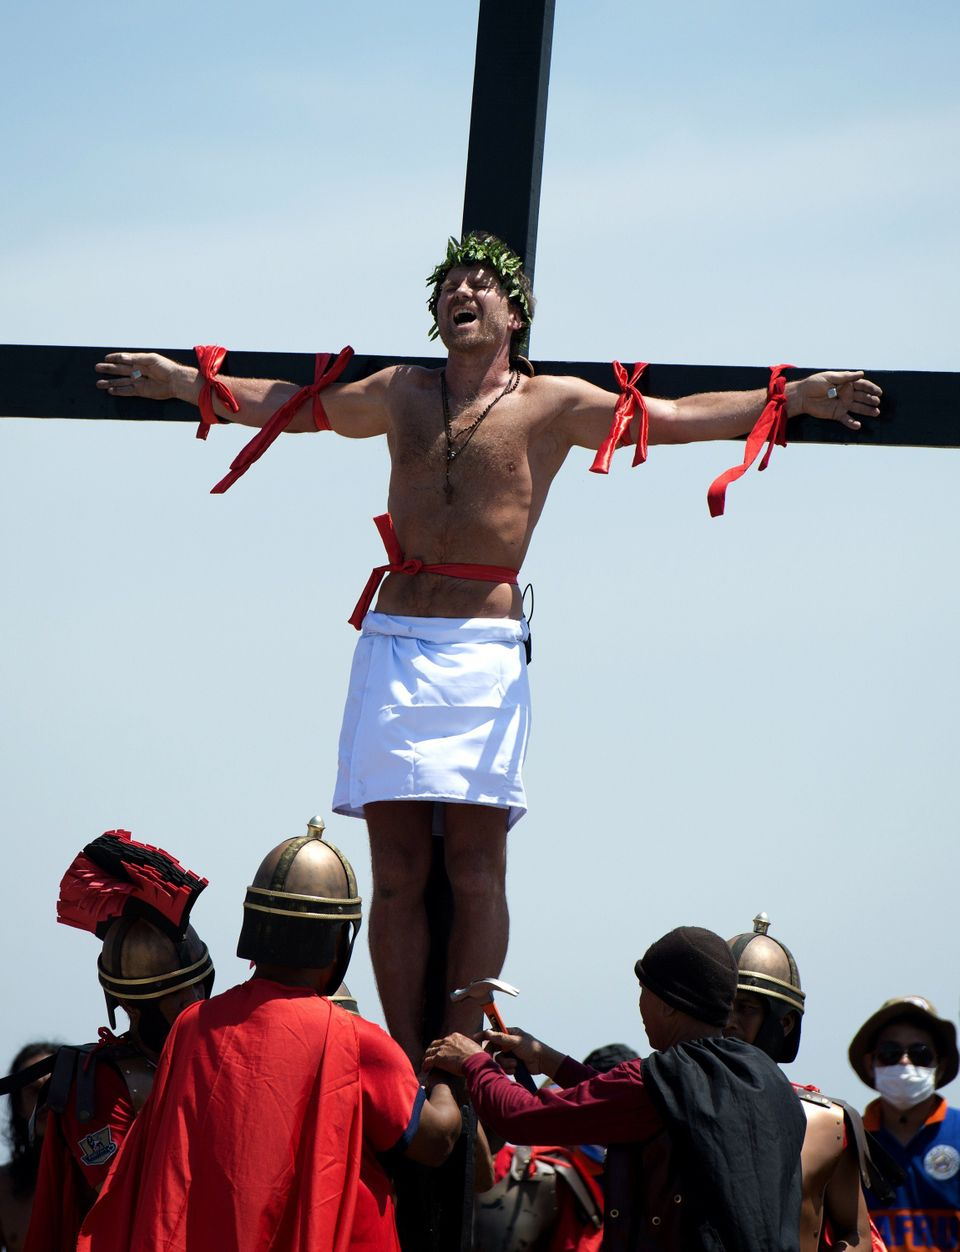 Danish film maker Lasse Spang Olsen grimaces as he is nailed to a cross during the a re-enactment of the Crucifixion of Chris